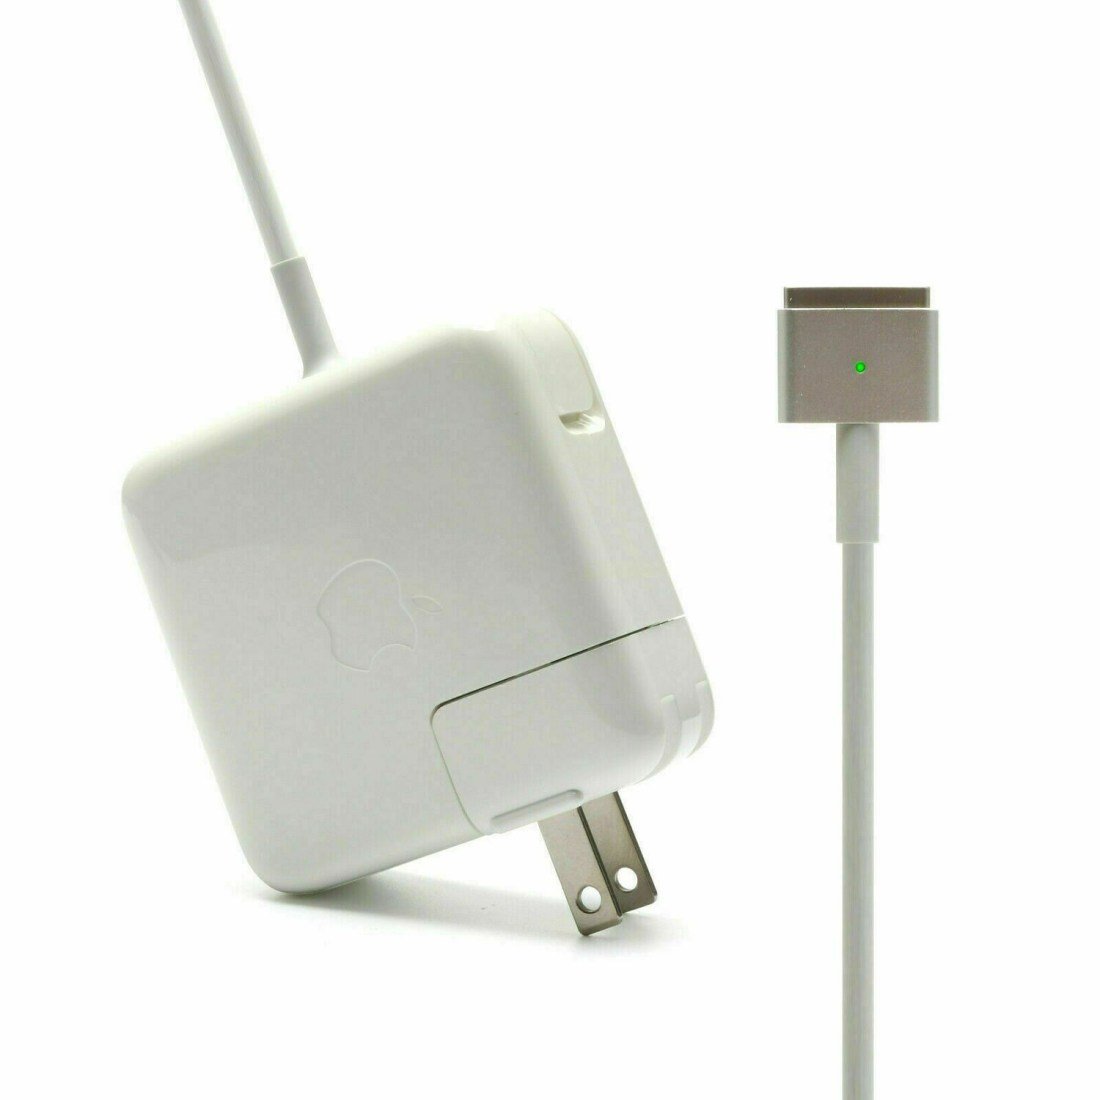 New Apple 45W adapter charger, Macbook Air Adapter Mag safe 2 A1436 Mid 2012 - 2017